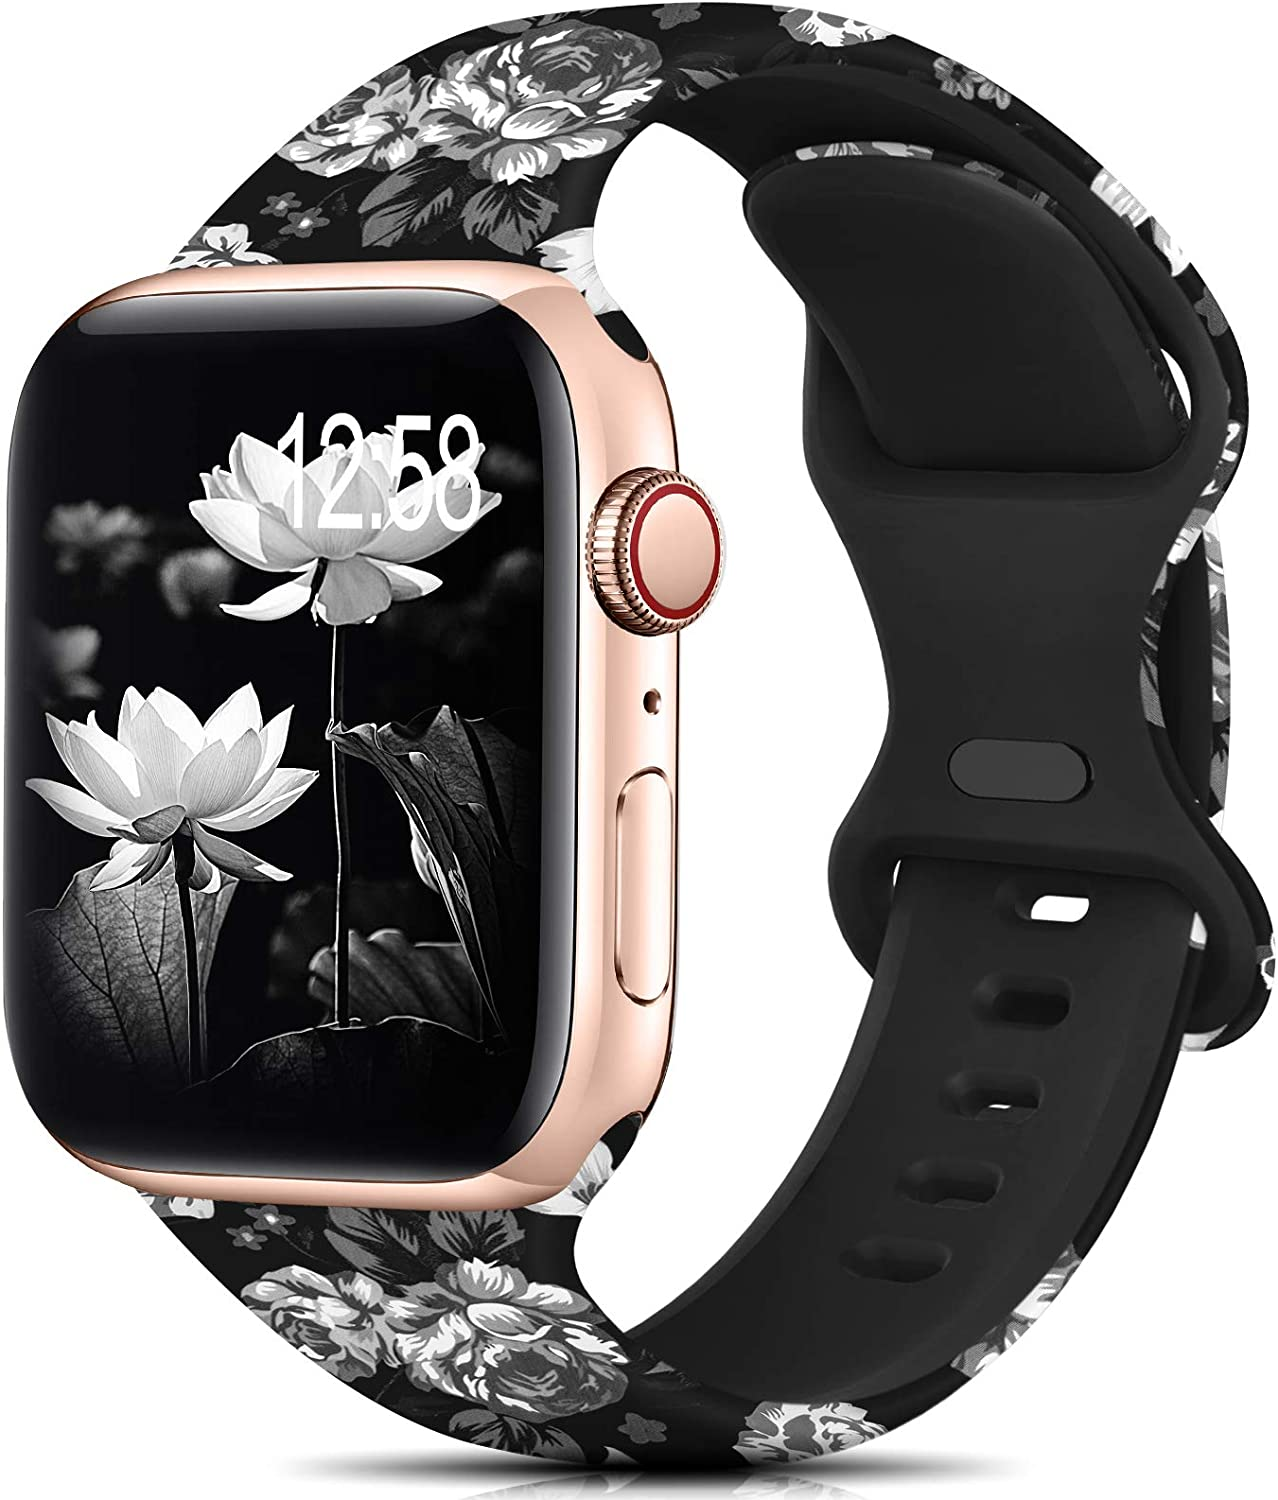 Sport Bands Compatible with Apple Watch Bands 38mm 40mm 42mm 44mm Size for Women Men,Floral Silicone Printed Fadeless Pattern Bands for iWatch Series 6 5 4 3 2 1 SE